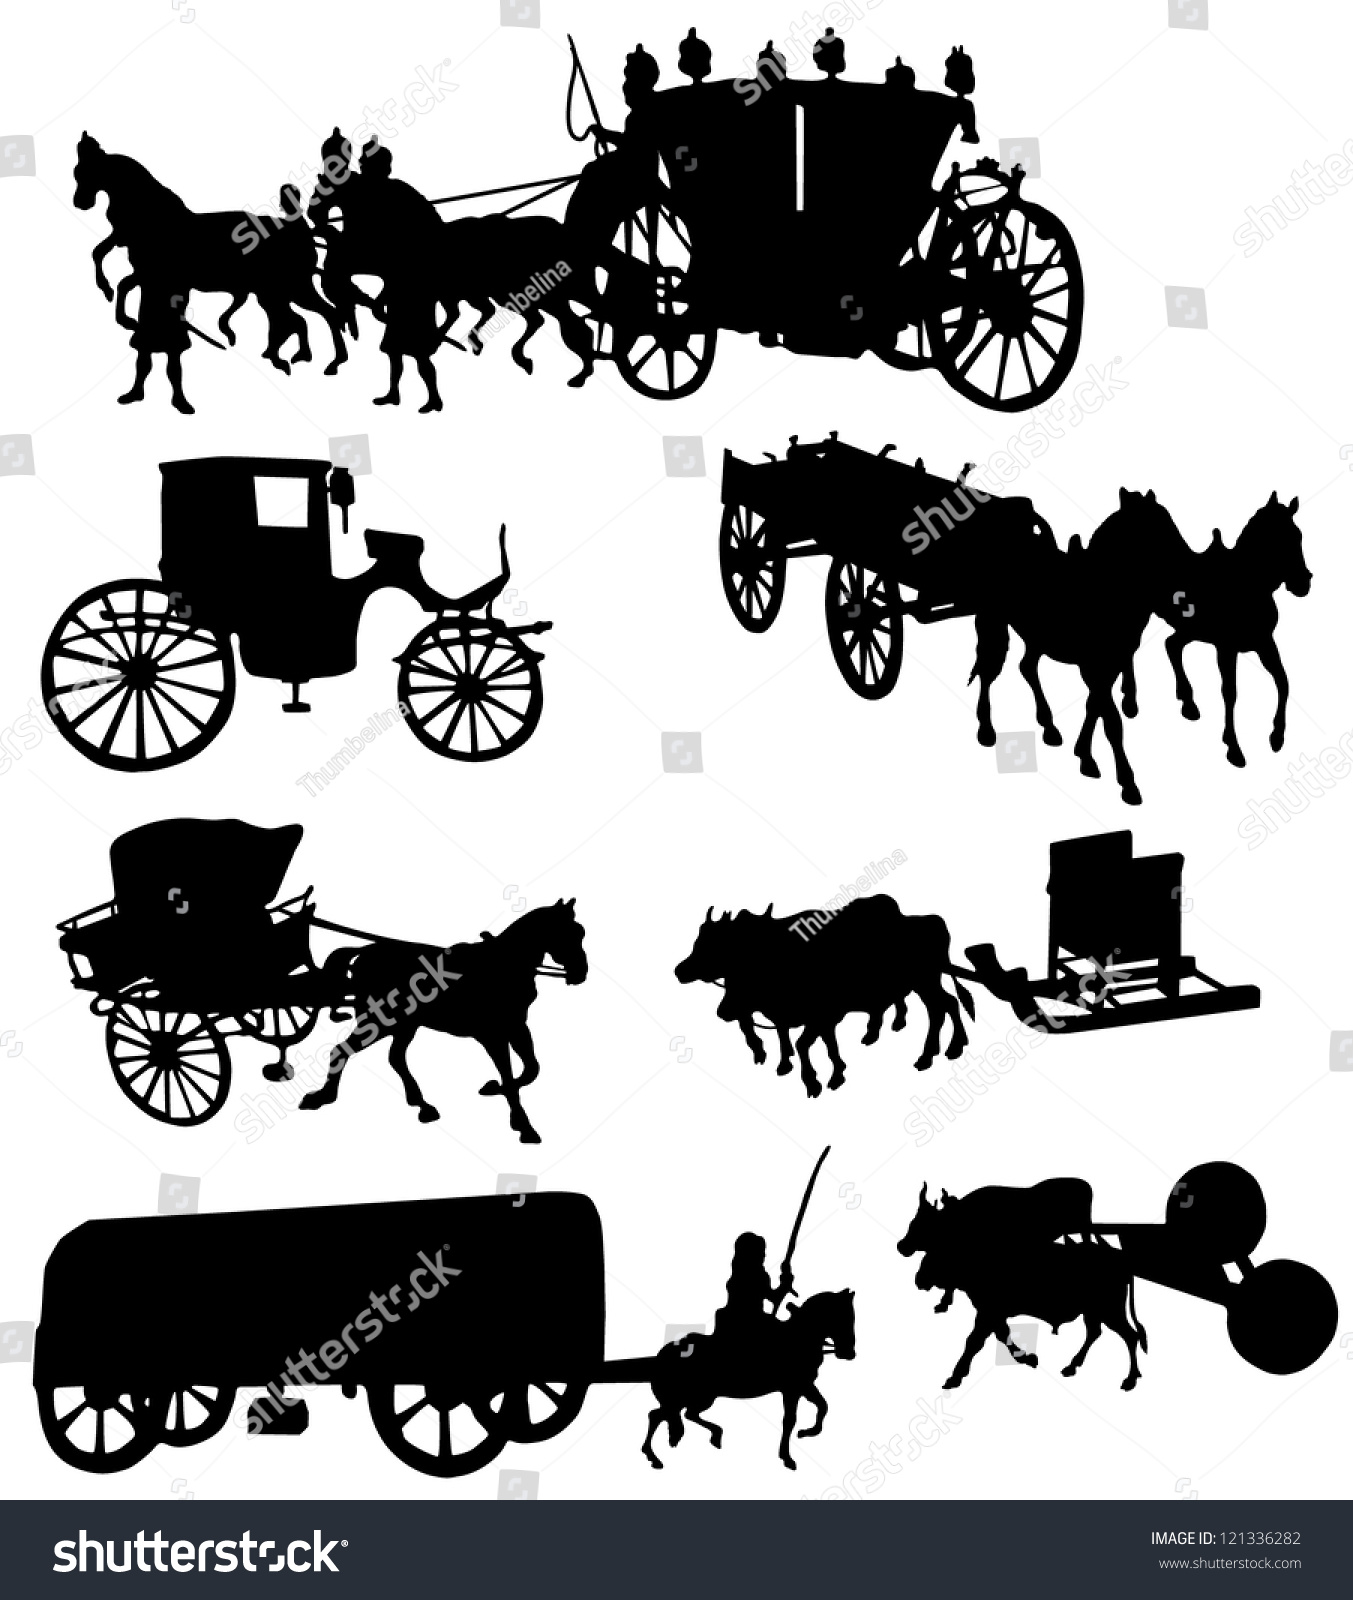 259 best vehicle line drawings images on Pinterest |Metal Horse And Buggy Silhouette